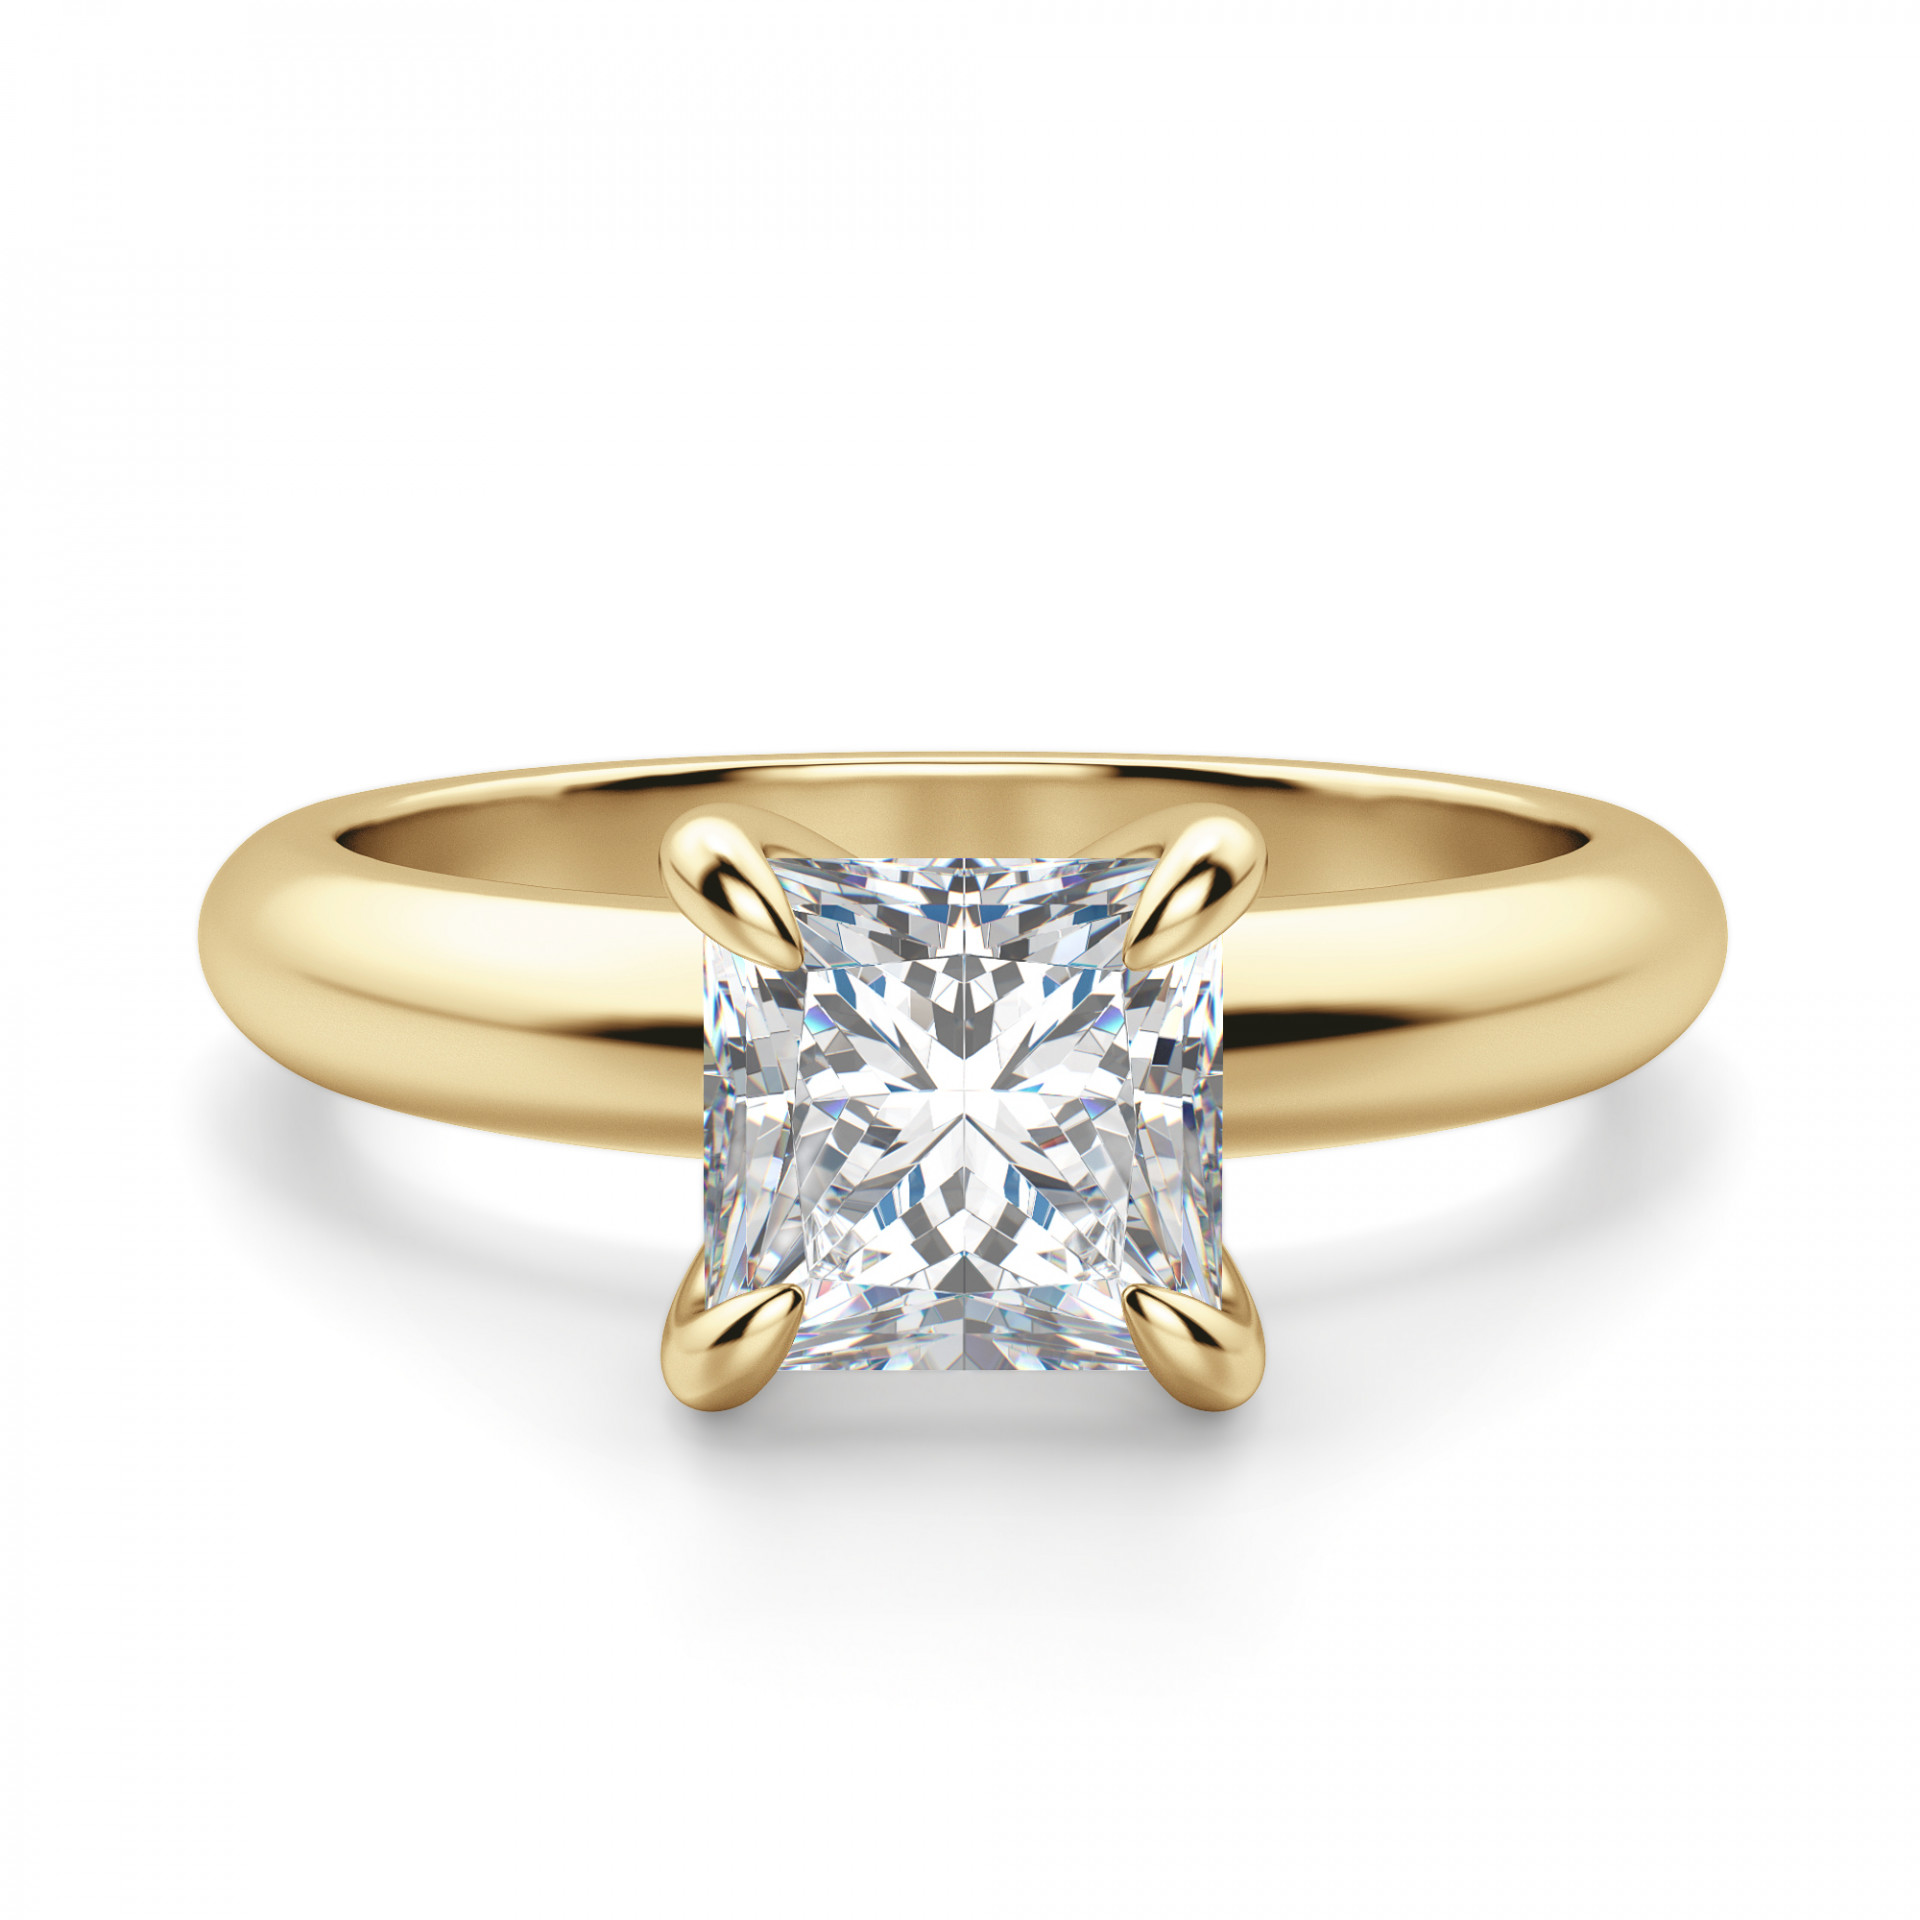 Claw Prong Princess Cut Solitaire Engagement Ring